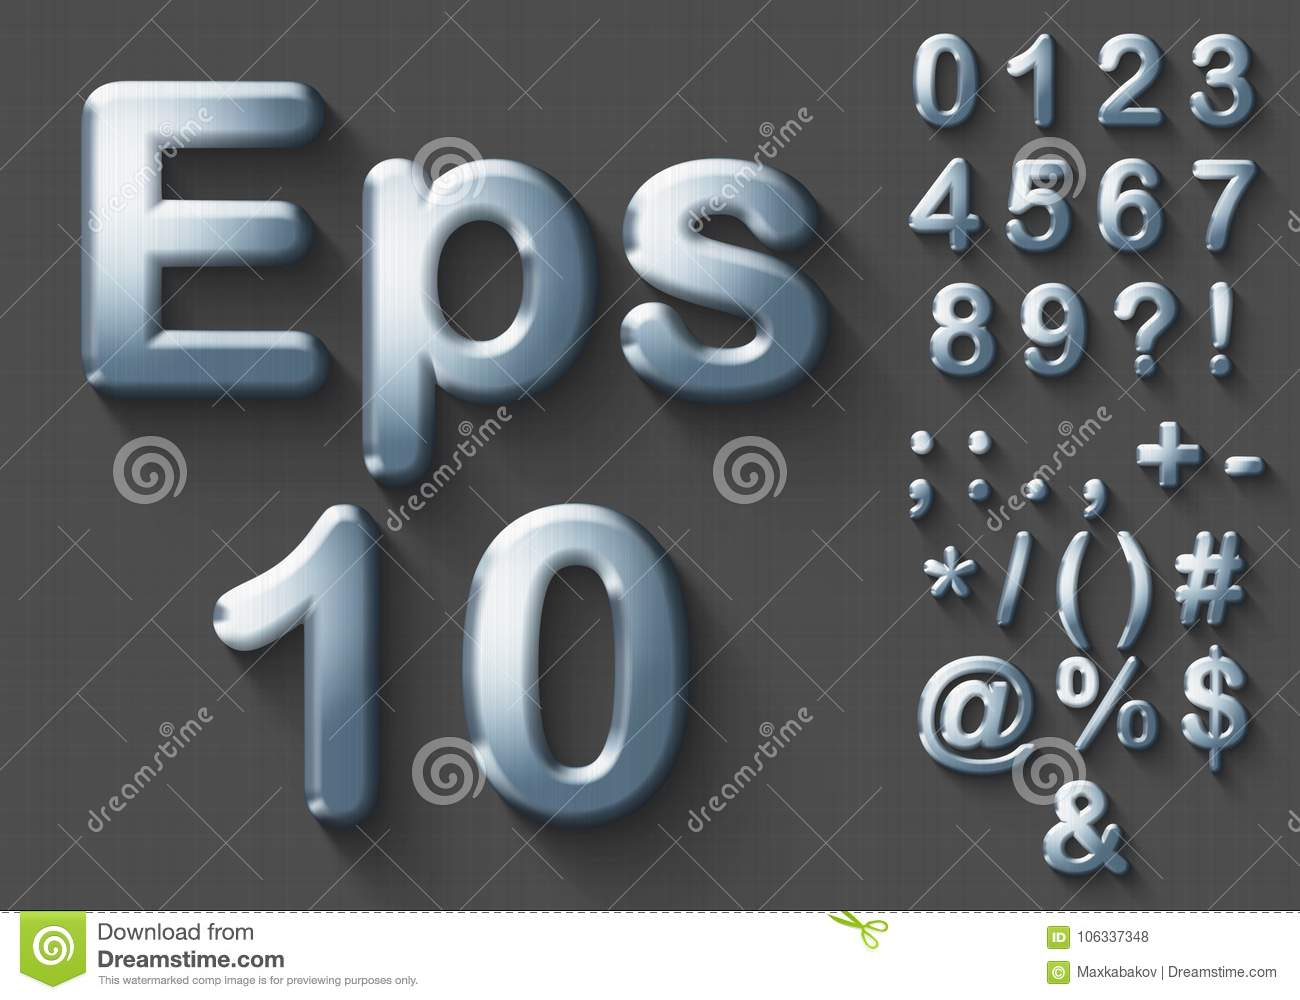 Set of chrome 3D Numbers and Symbols.